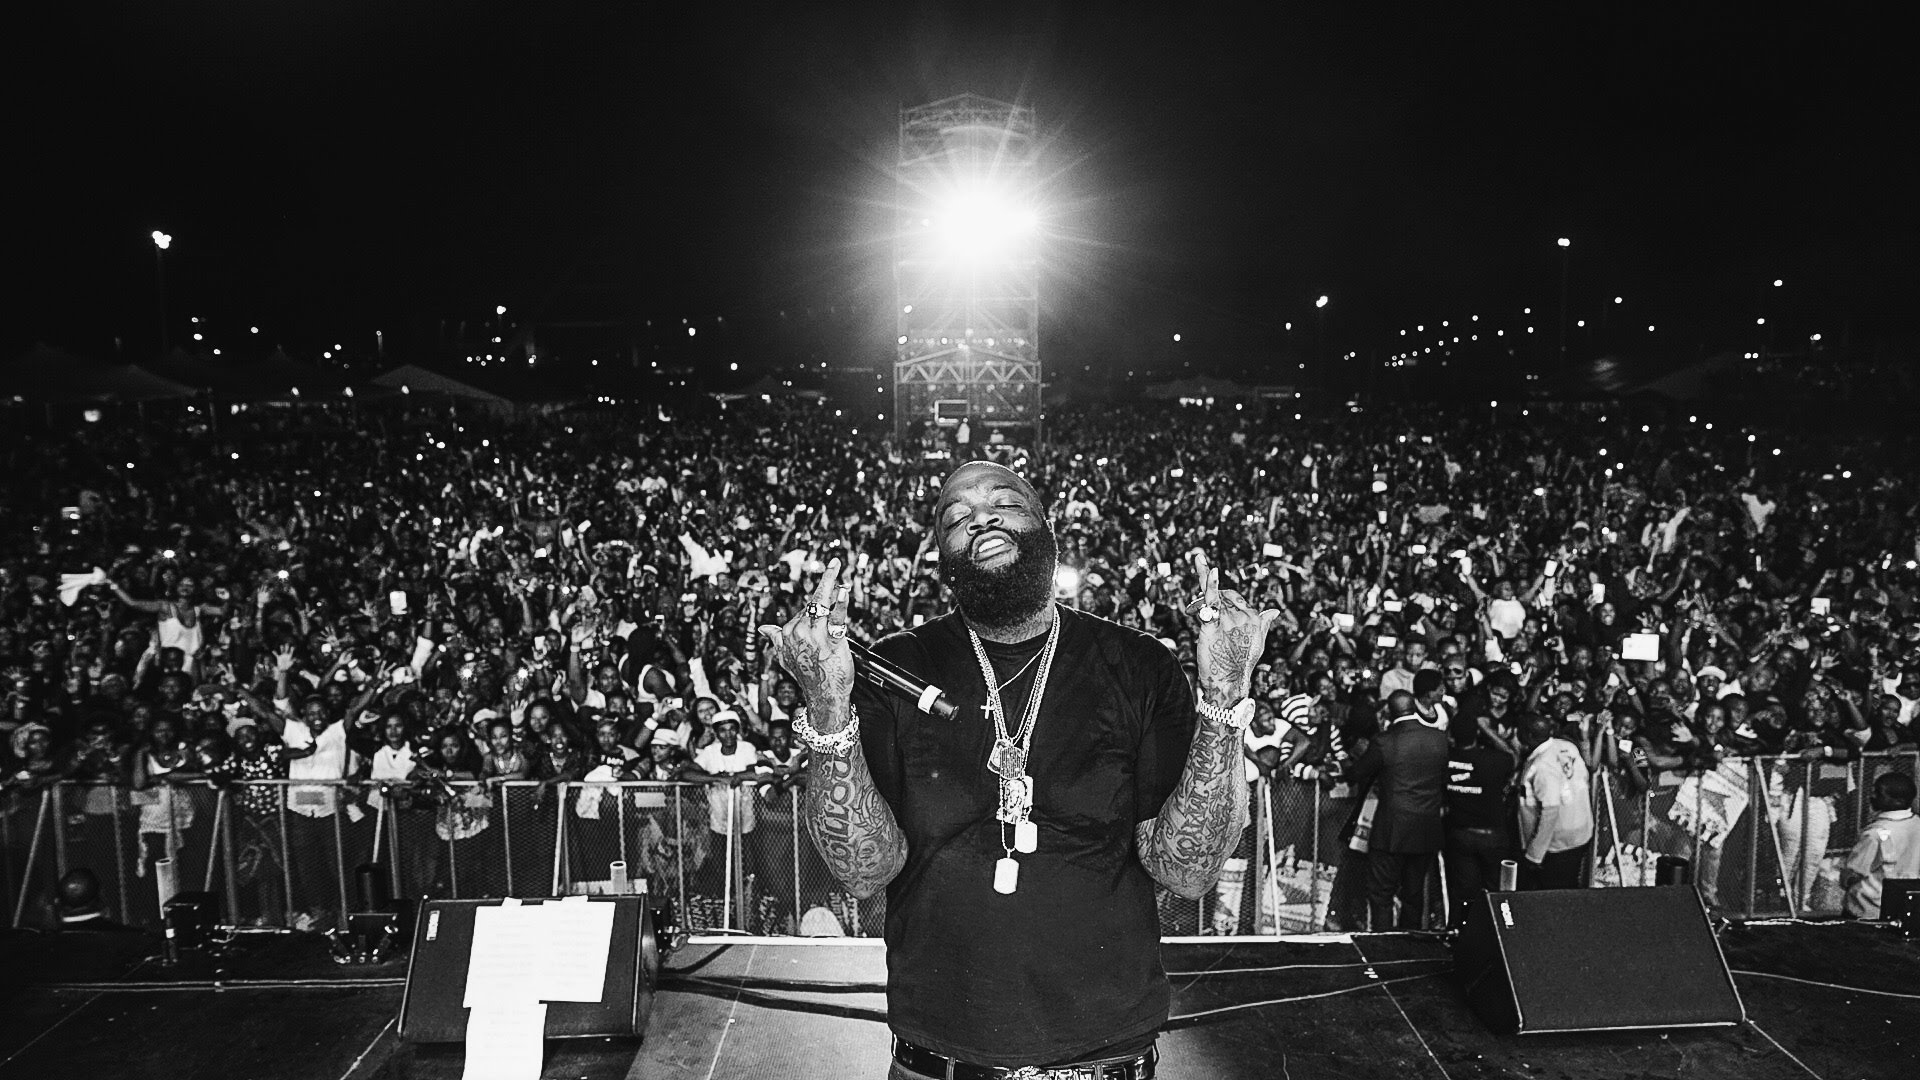 Hip hop concert rick ross black awakening movement - Concert crowd wallpaper ...